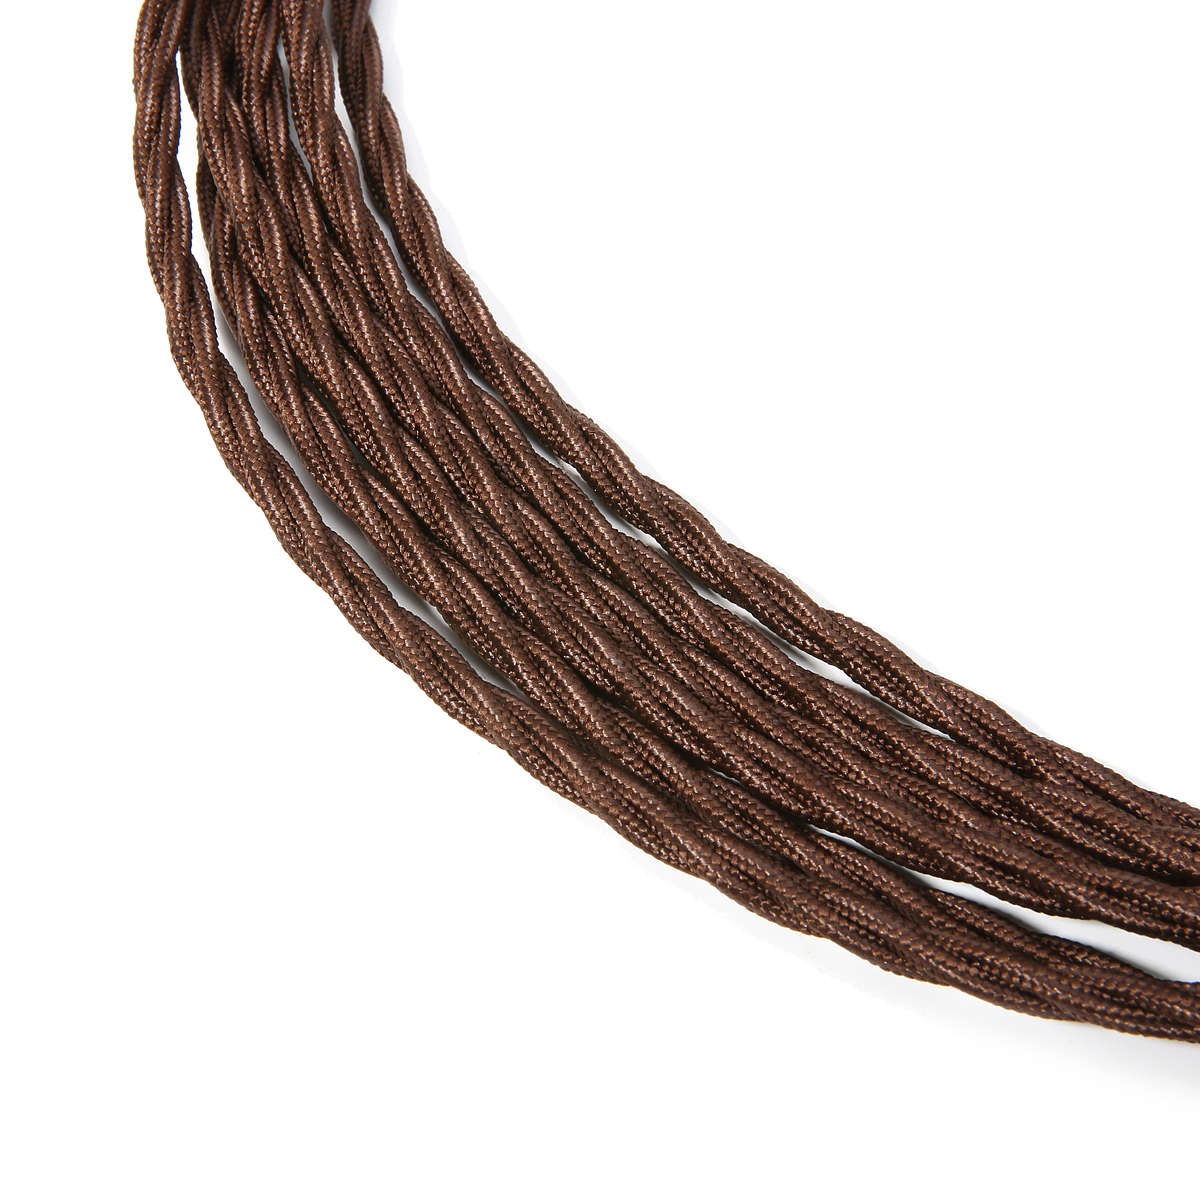 5M Twisted Vintage Style 3 Core Wire Fabric Cable for Pendant Lighting